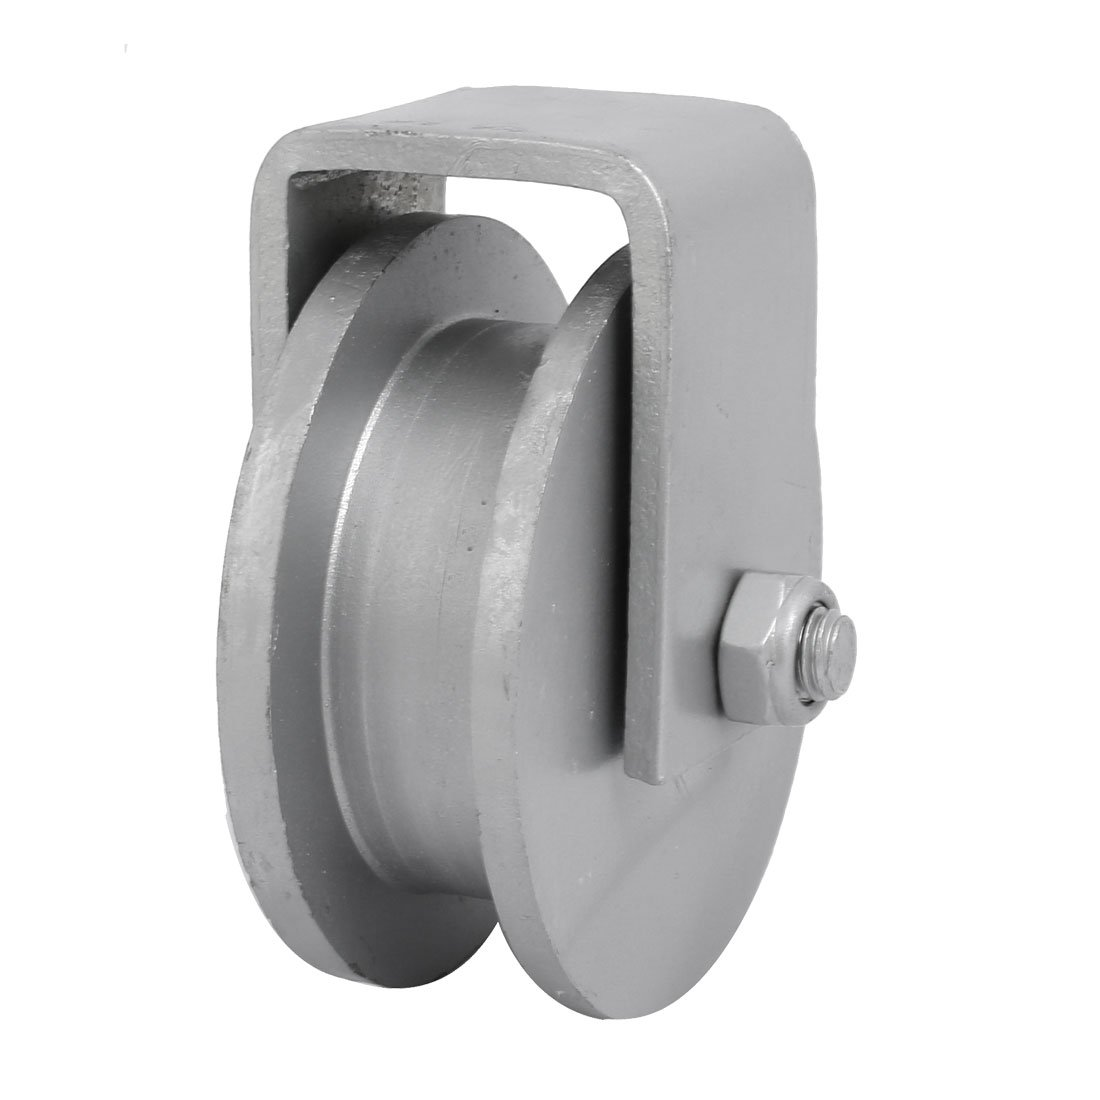 uxcell 100mm Dia Wheel 304 Stainless Steel H-Shaped Rail Track Bearing Fixed Pulley